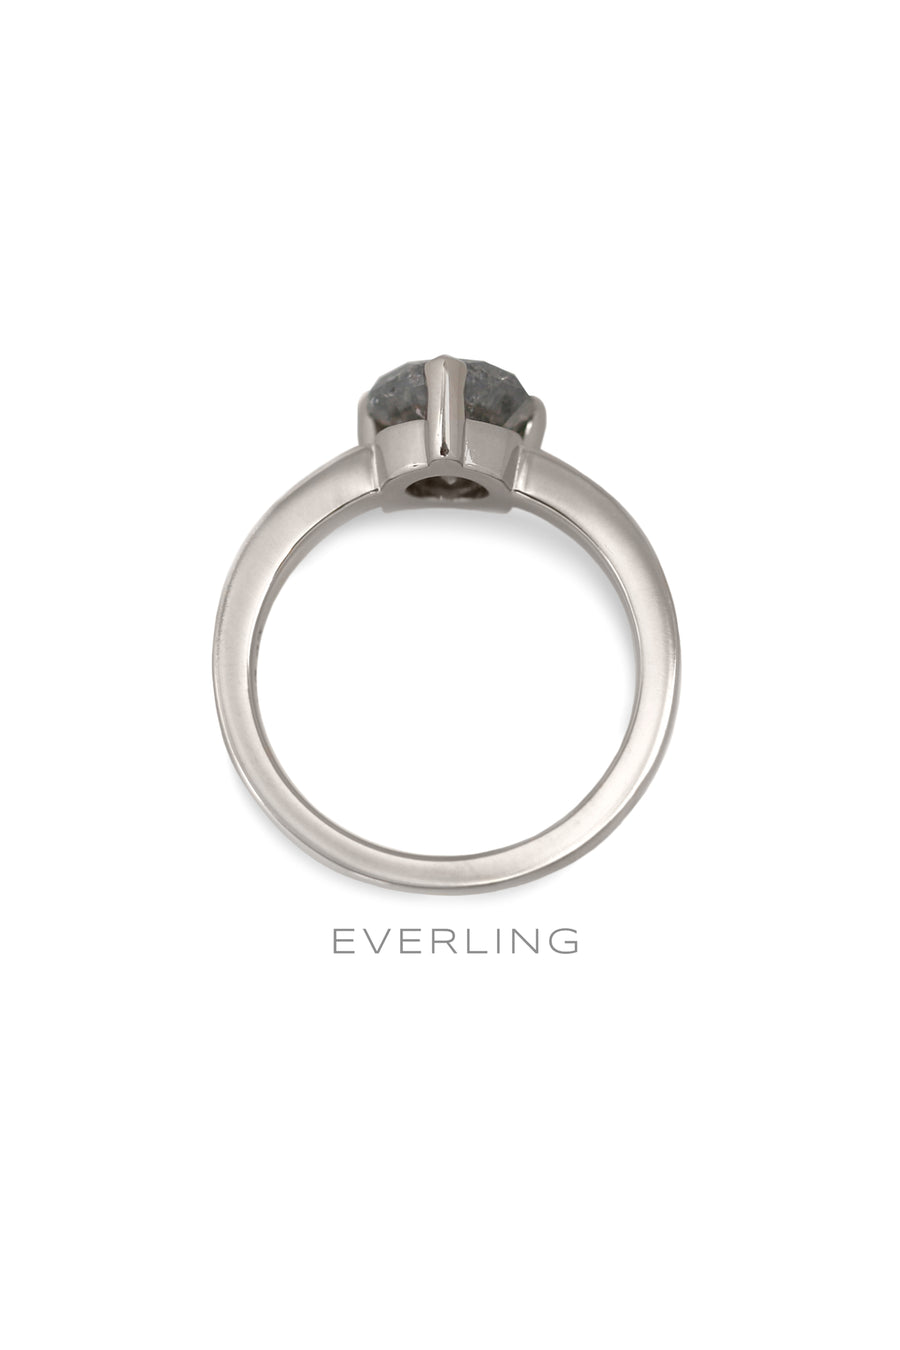 Front view of a 3 prong ring made with recycled 14k palladium white gold for a 2.00ct RBC Salt and Pepper diamonds with Canadian sourced diamonds on each side. www.EverlingJewelry.com